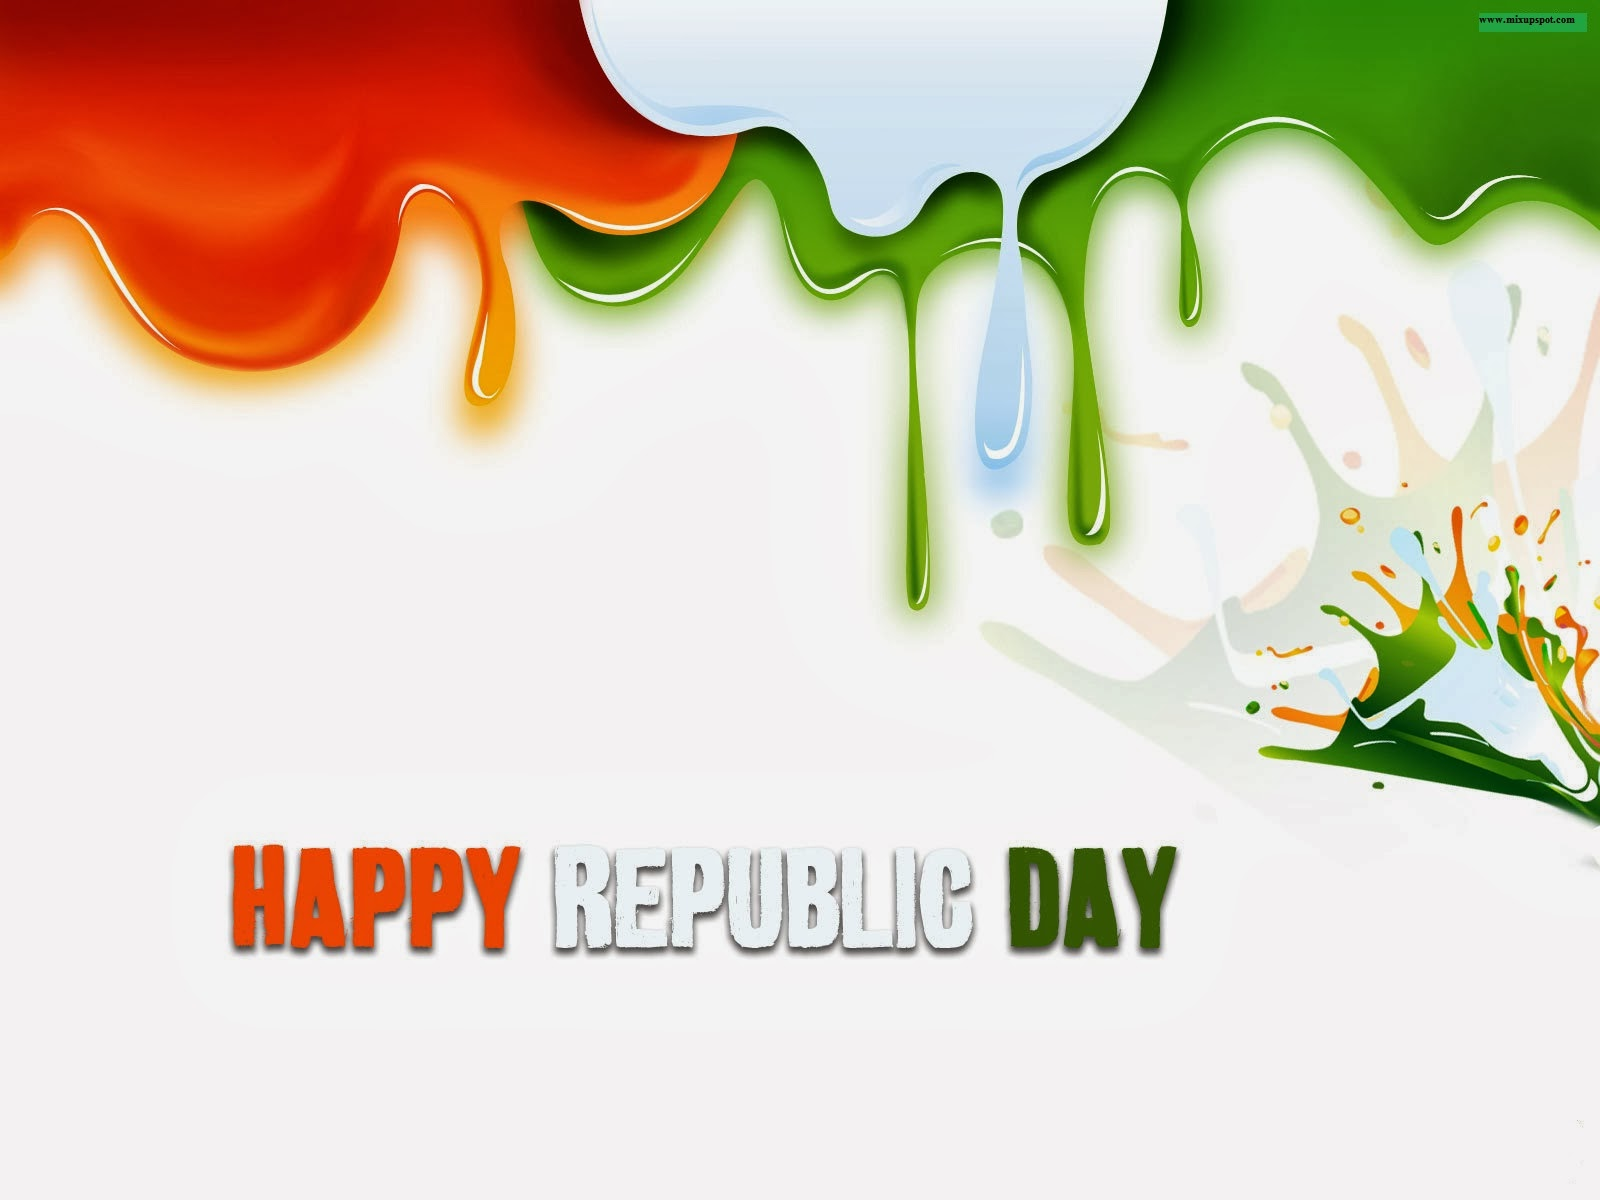 Happy Republic Day Text SMS In HINDI Font  Happy Valentines Day . 1600 x 1200.Valentine's Day Video Text Messages